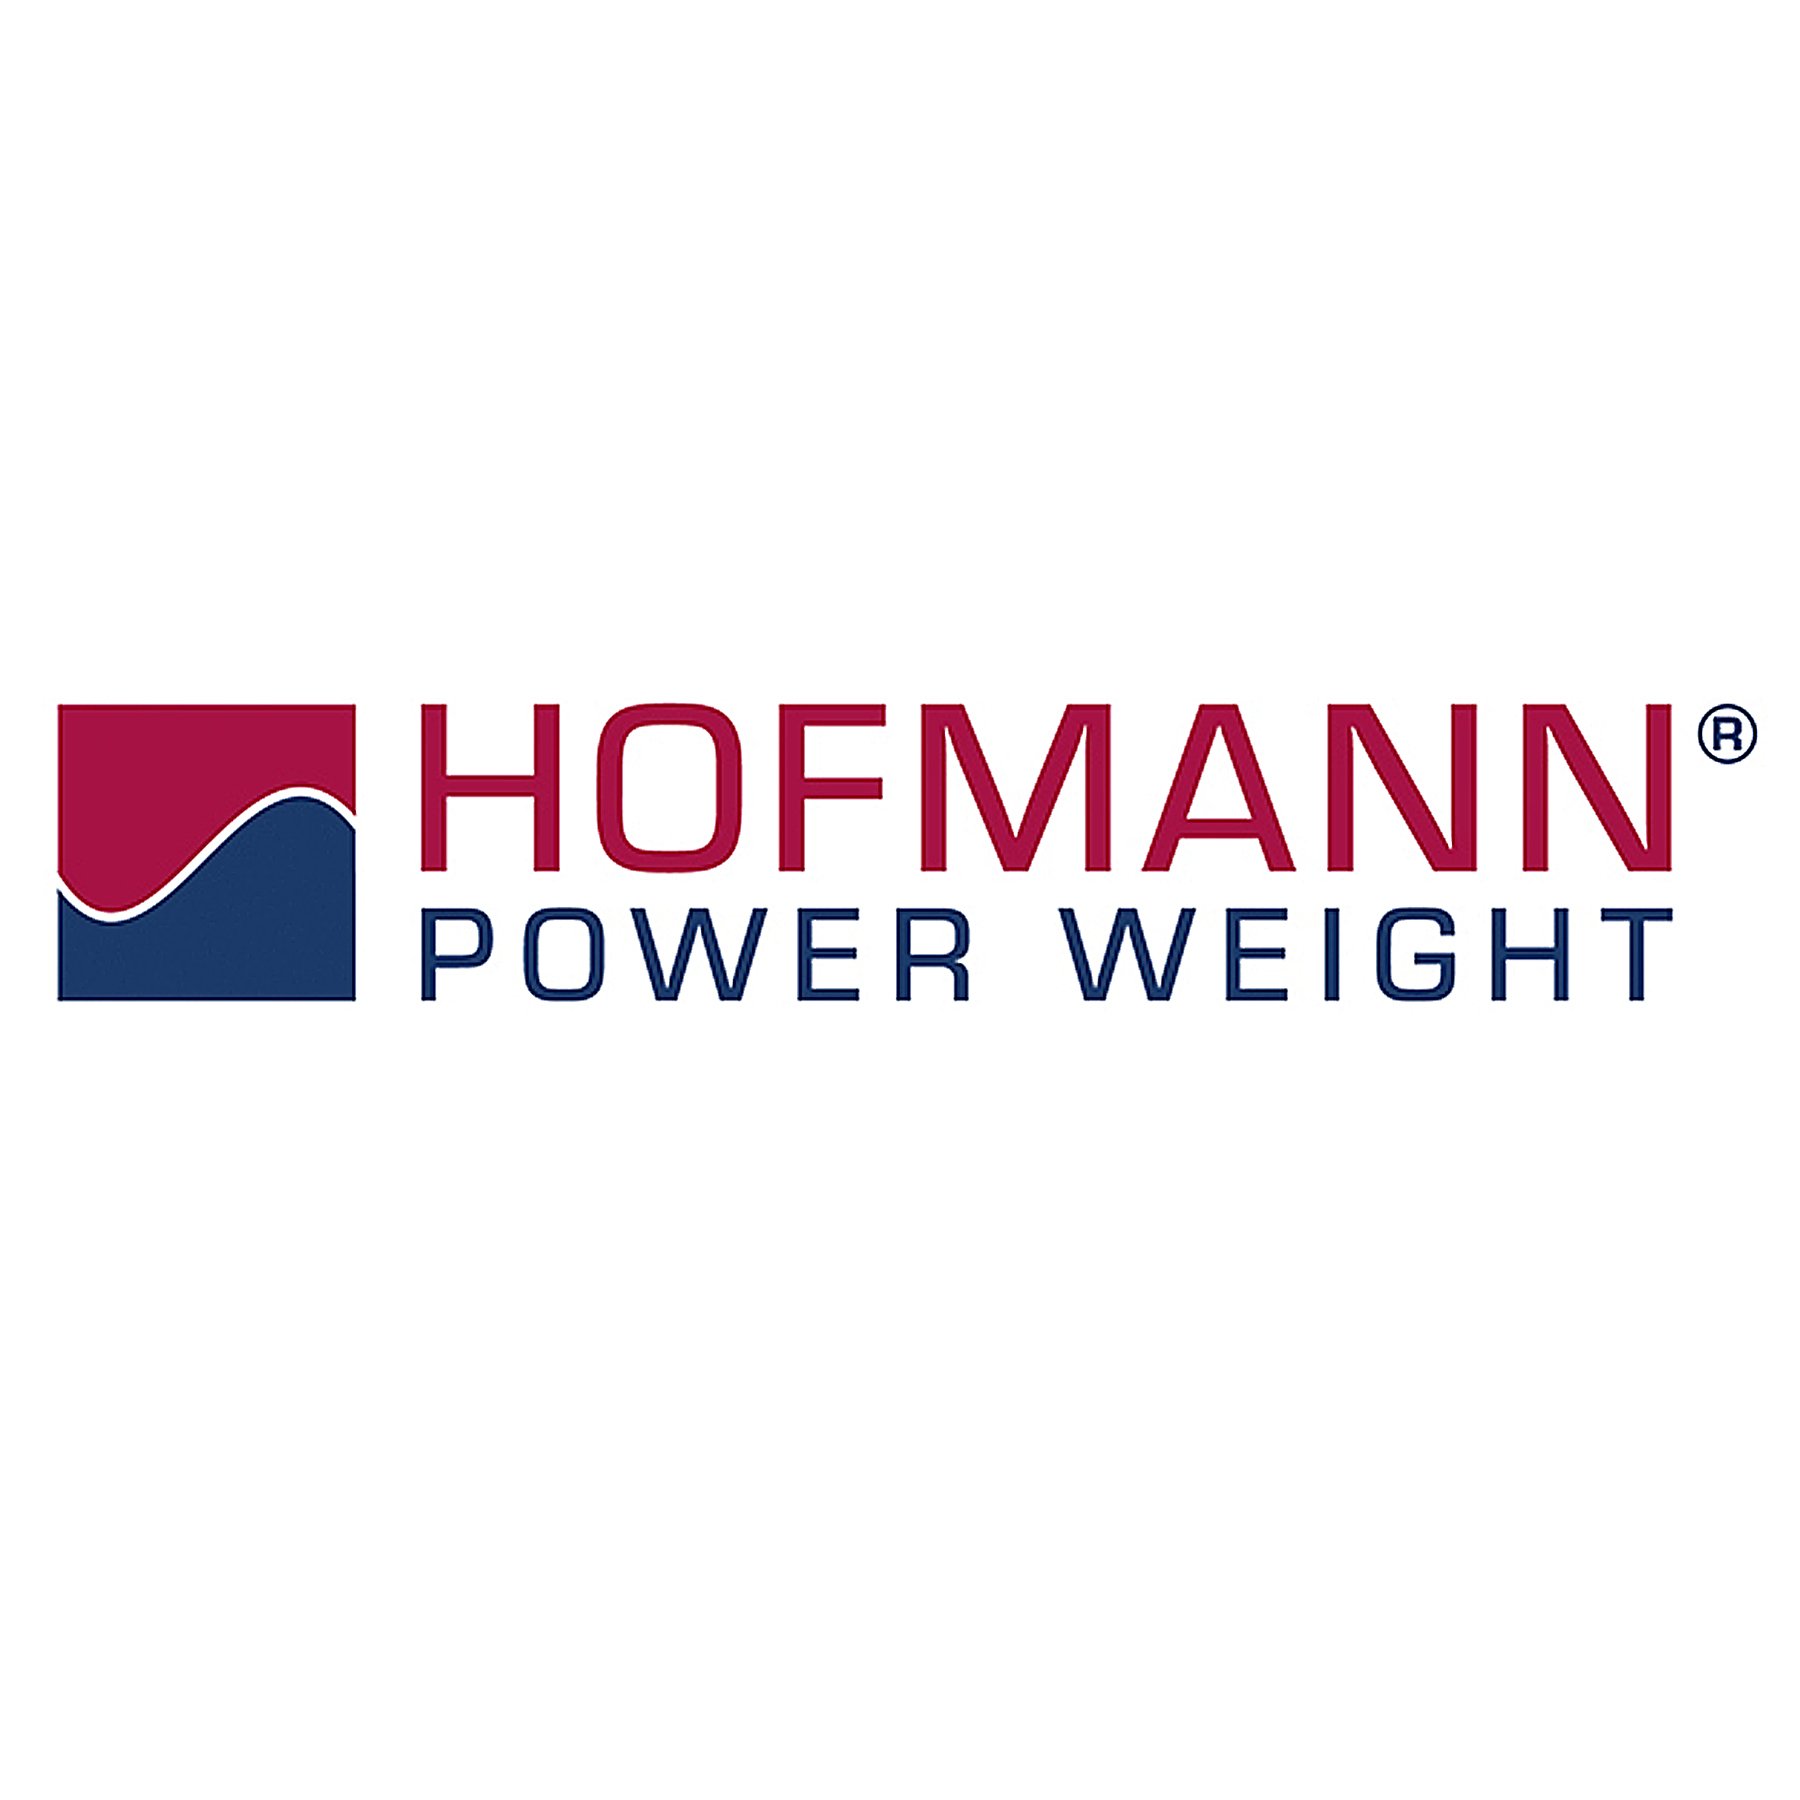 Hoffman Power Weight